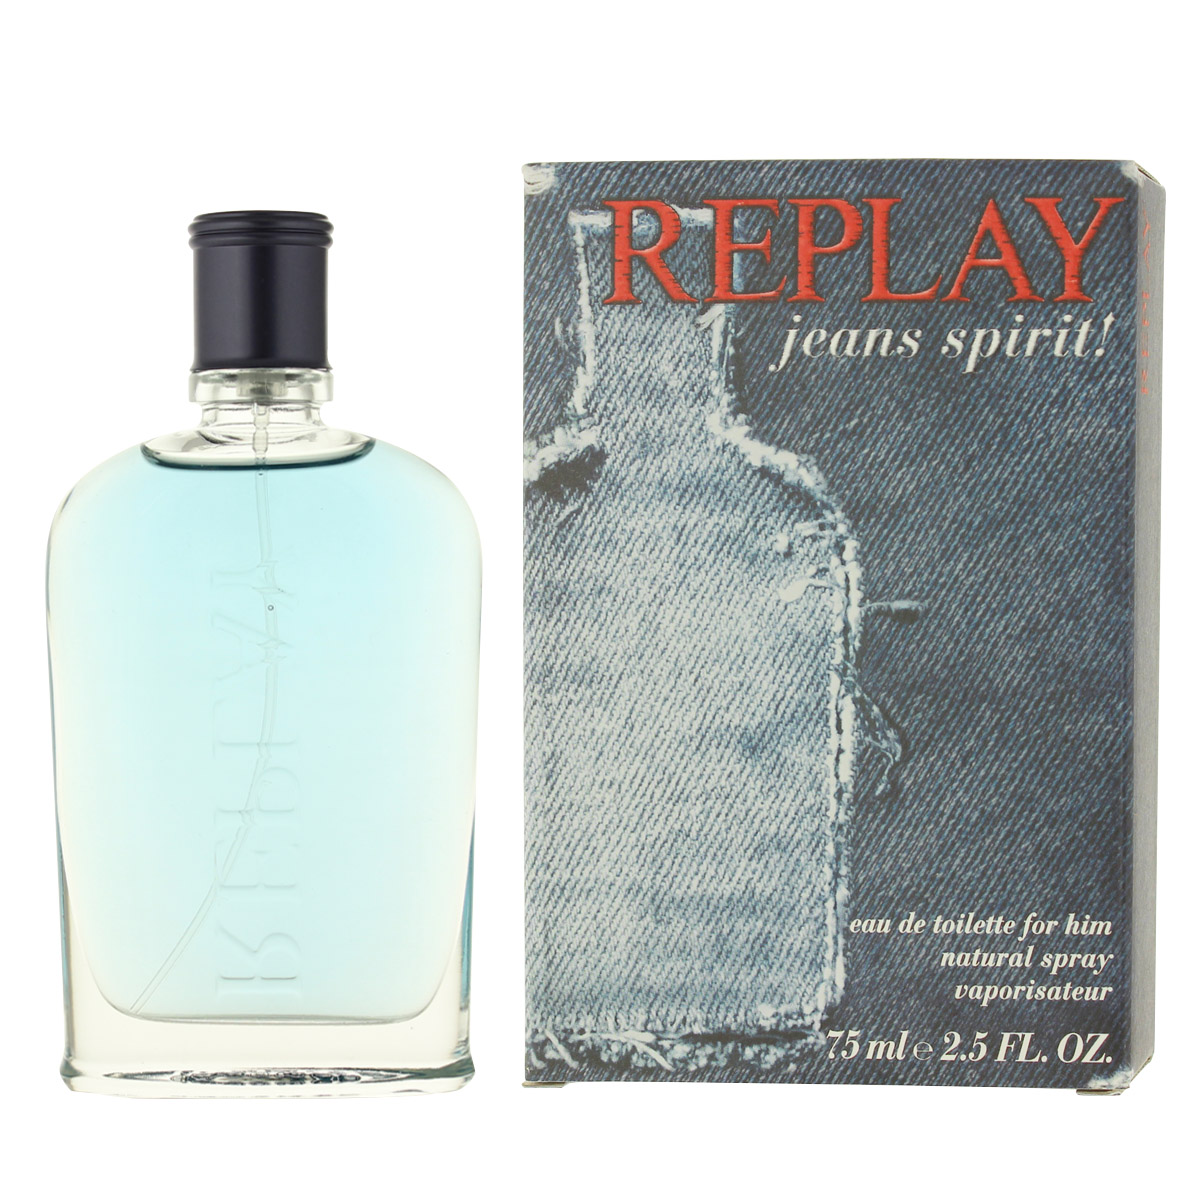 Replay Jeans Spirit! for Him EDT 75 ml M